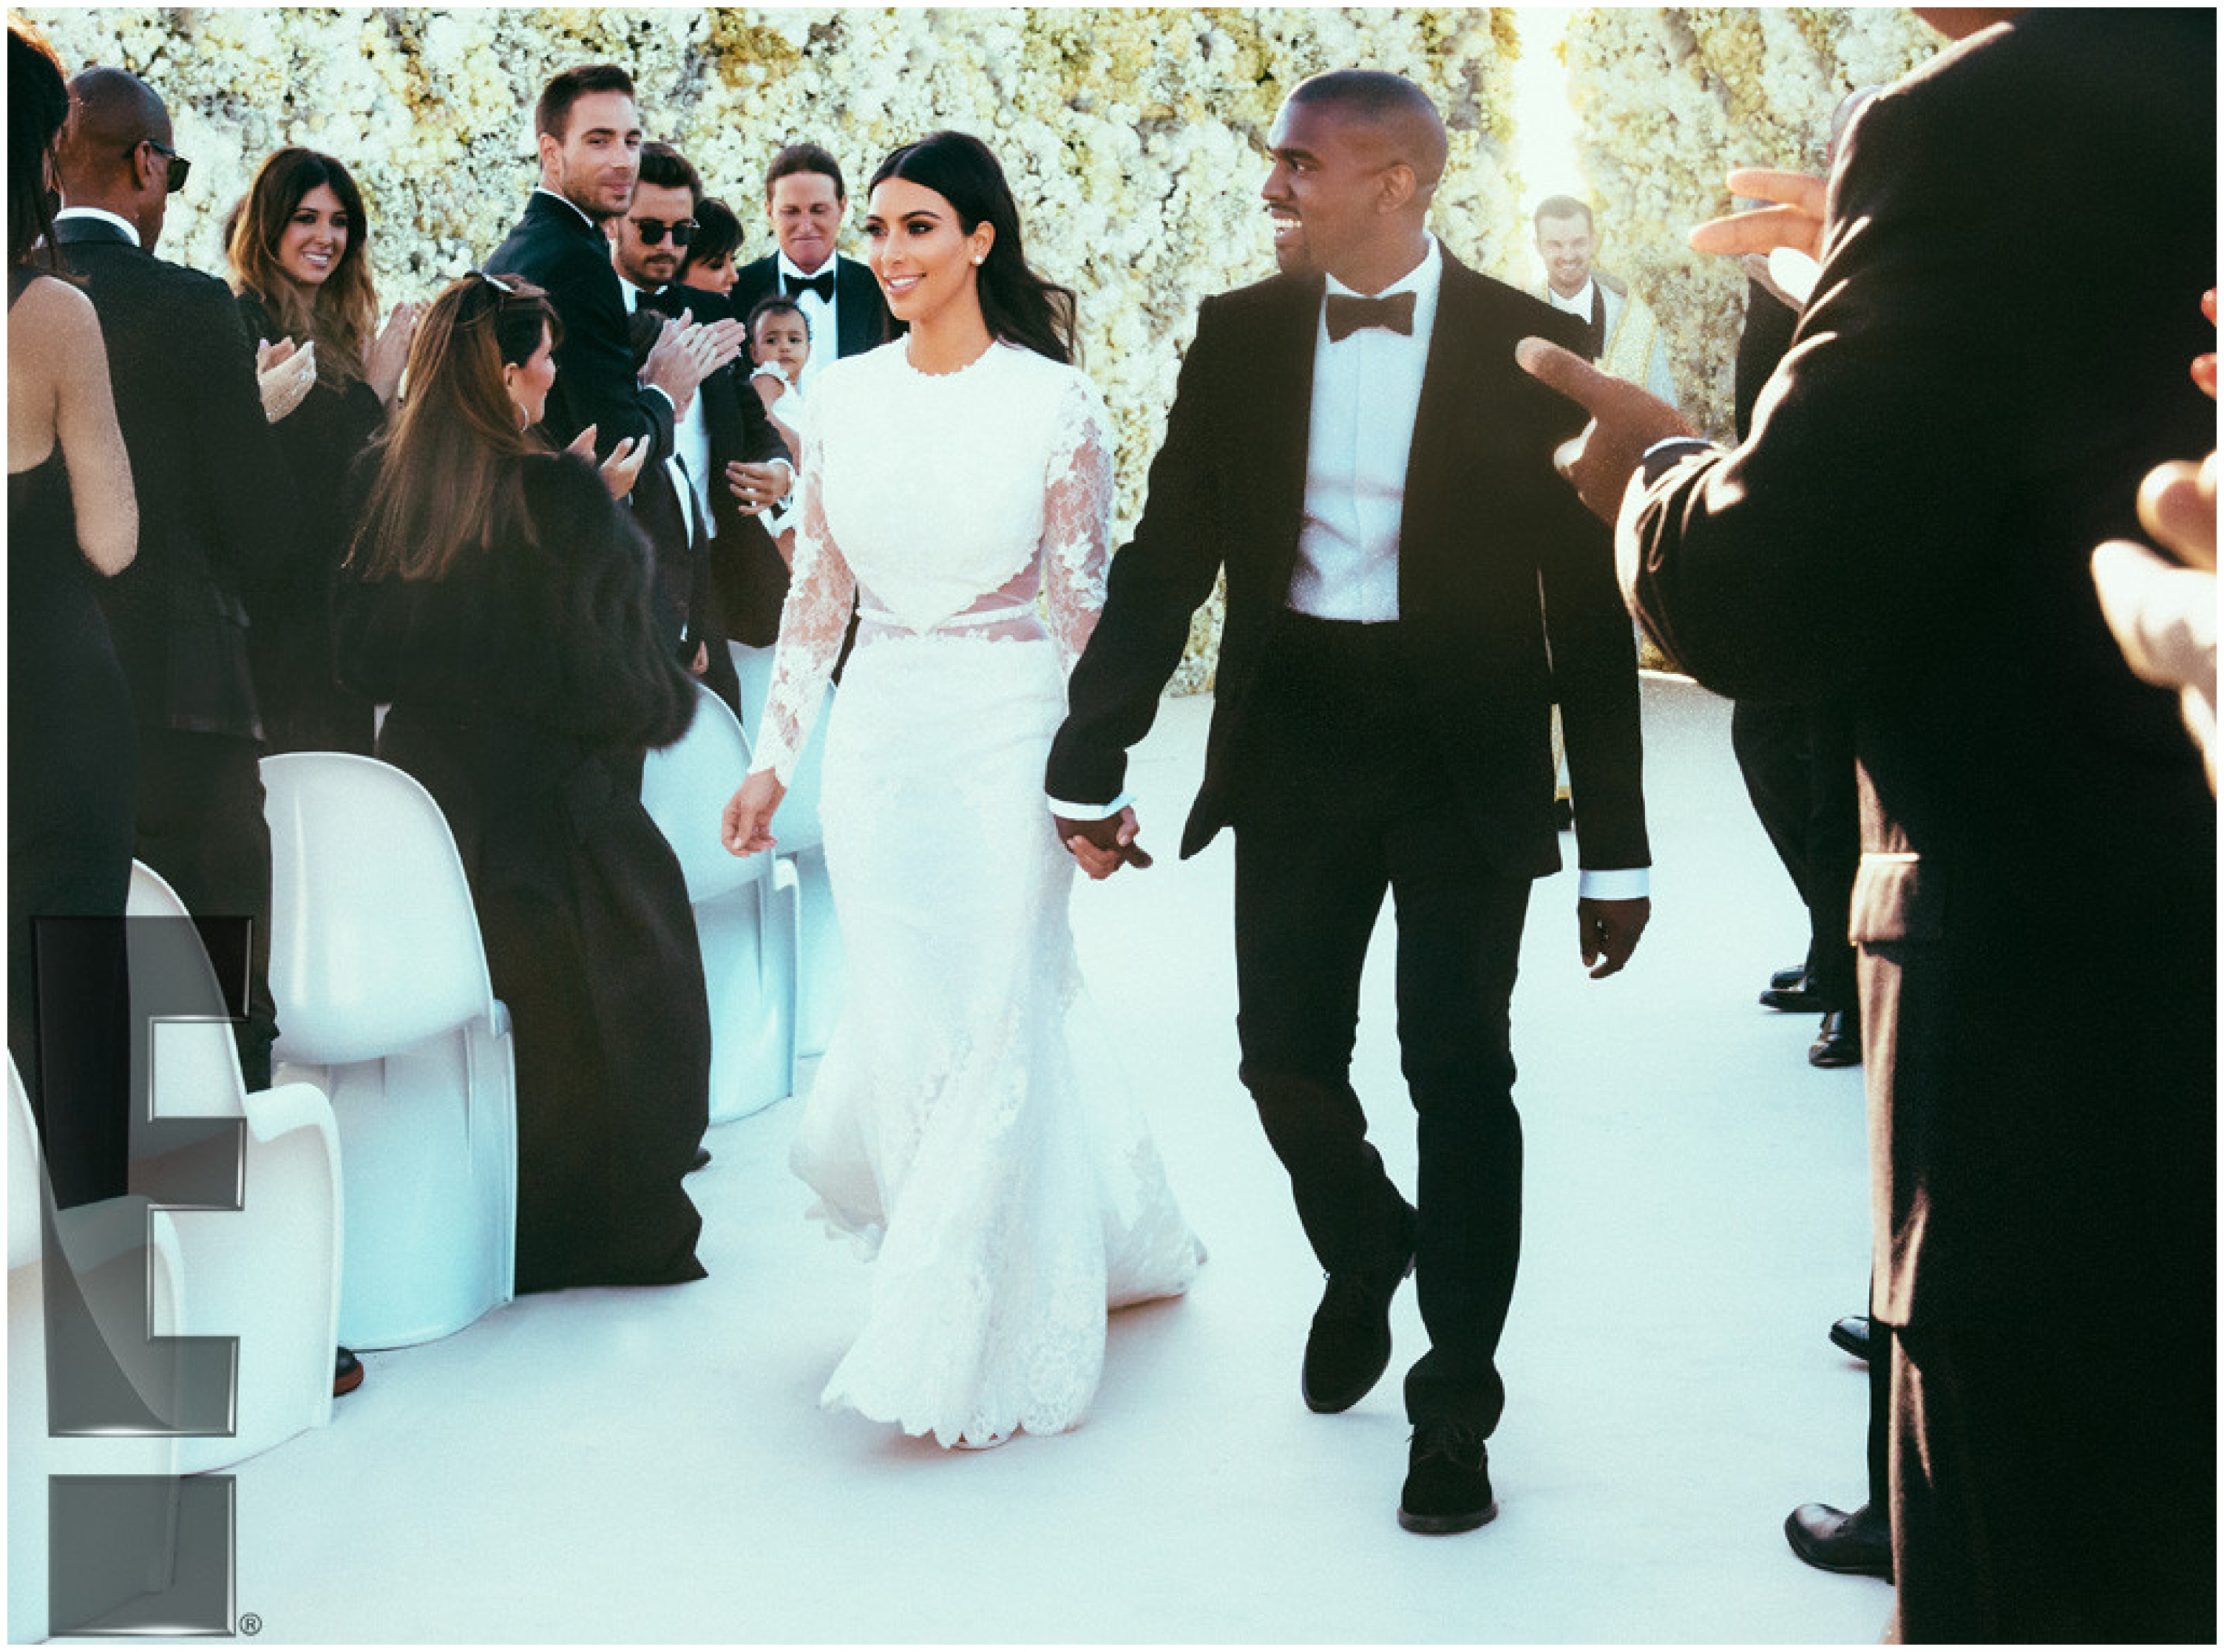 Wedding News: Kim Kardashian's wedding dresses